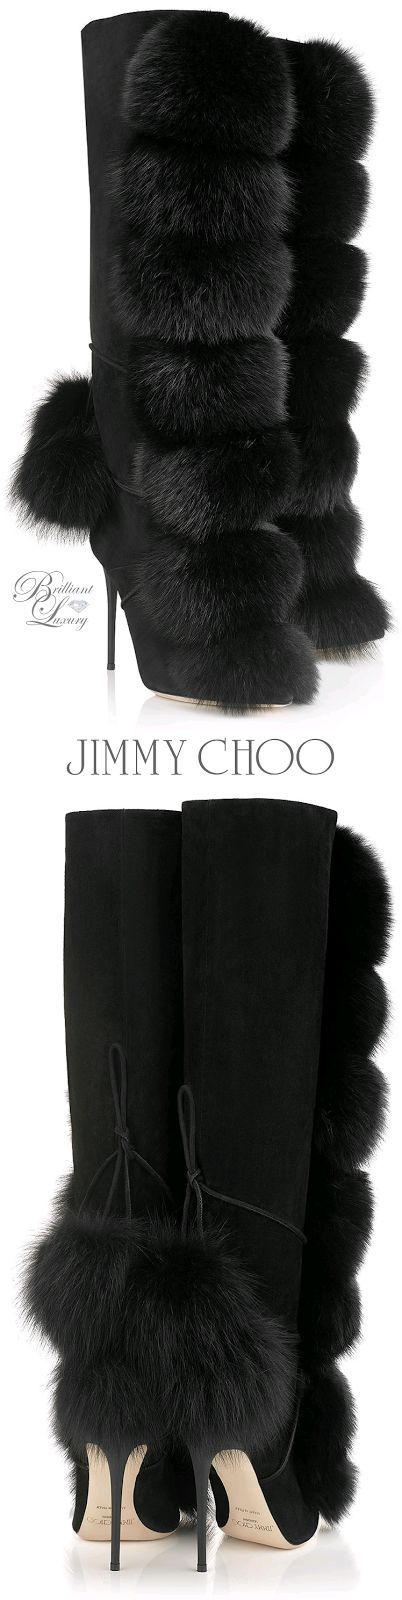 Brilliant Luxury * Jimmy Choo 'Deeta' FW 2015